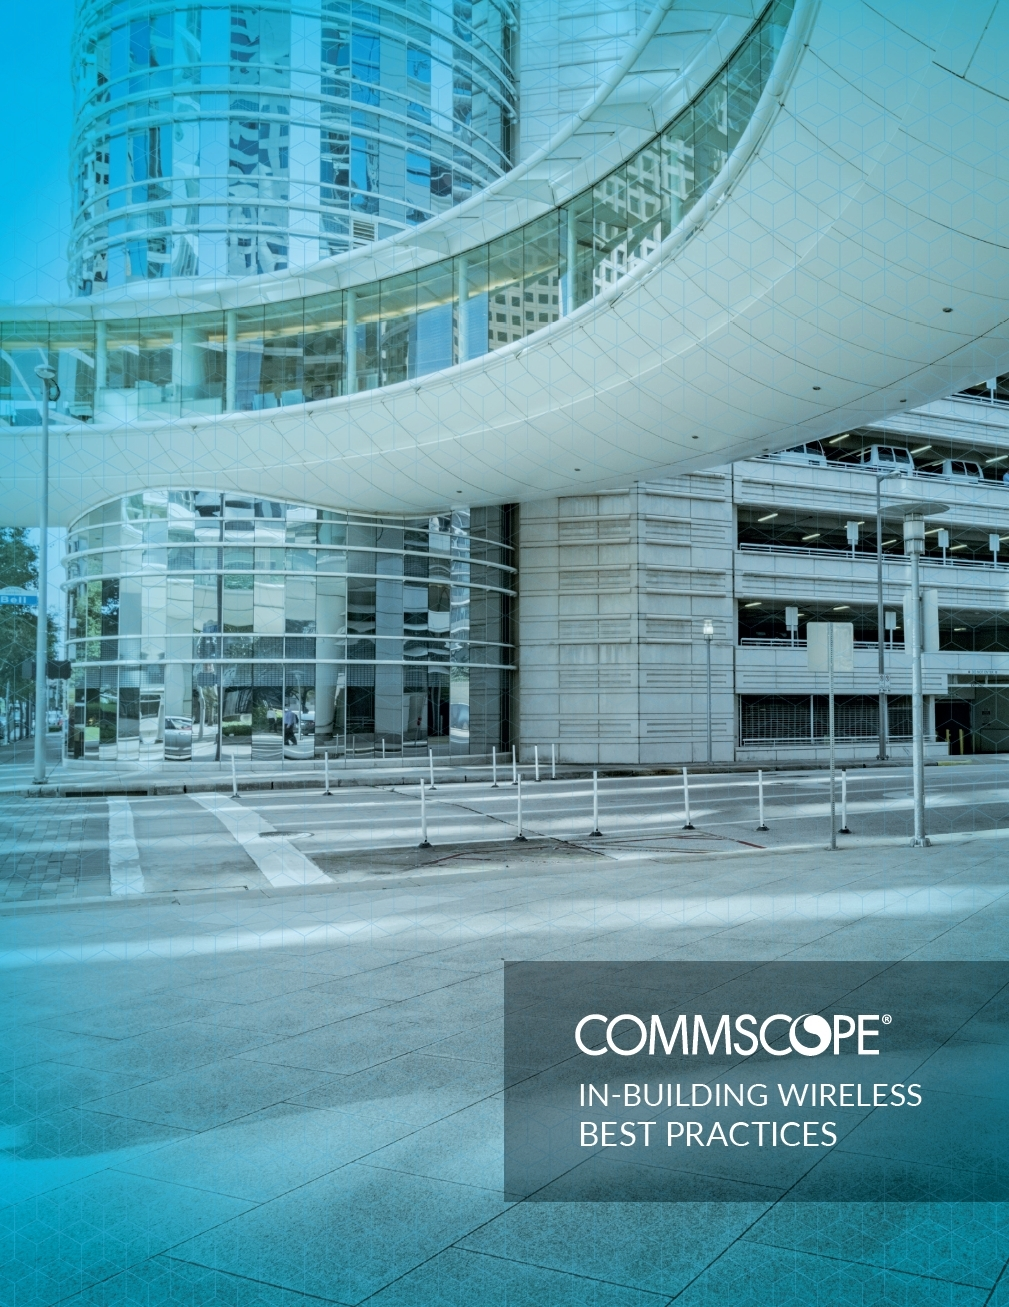 """CommScope has released the """"In-Building Wireless Best Practices"""" eBook in an effort to continue educating business owners of various enterprises about IBW.  (Photo: Business Wire)"""